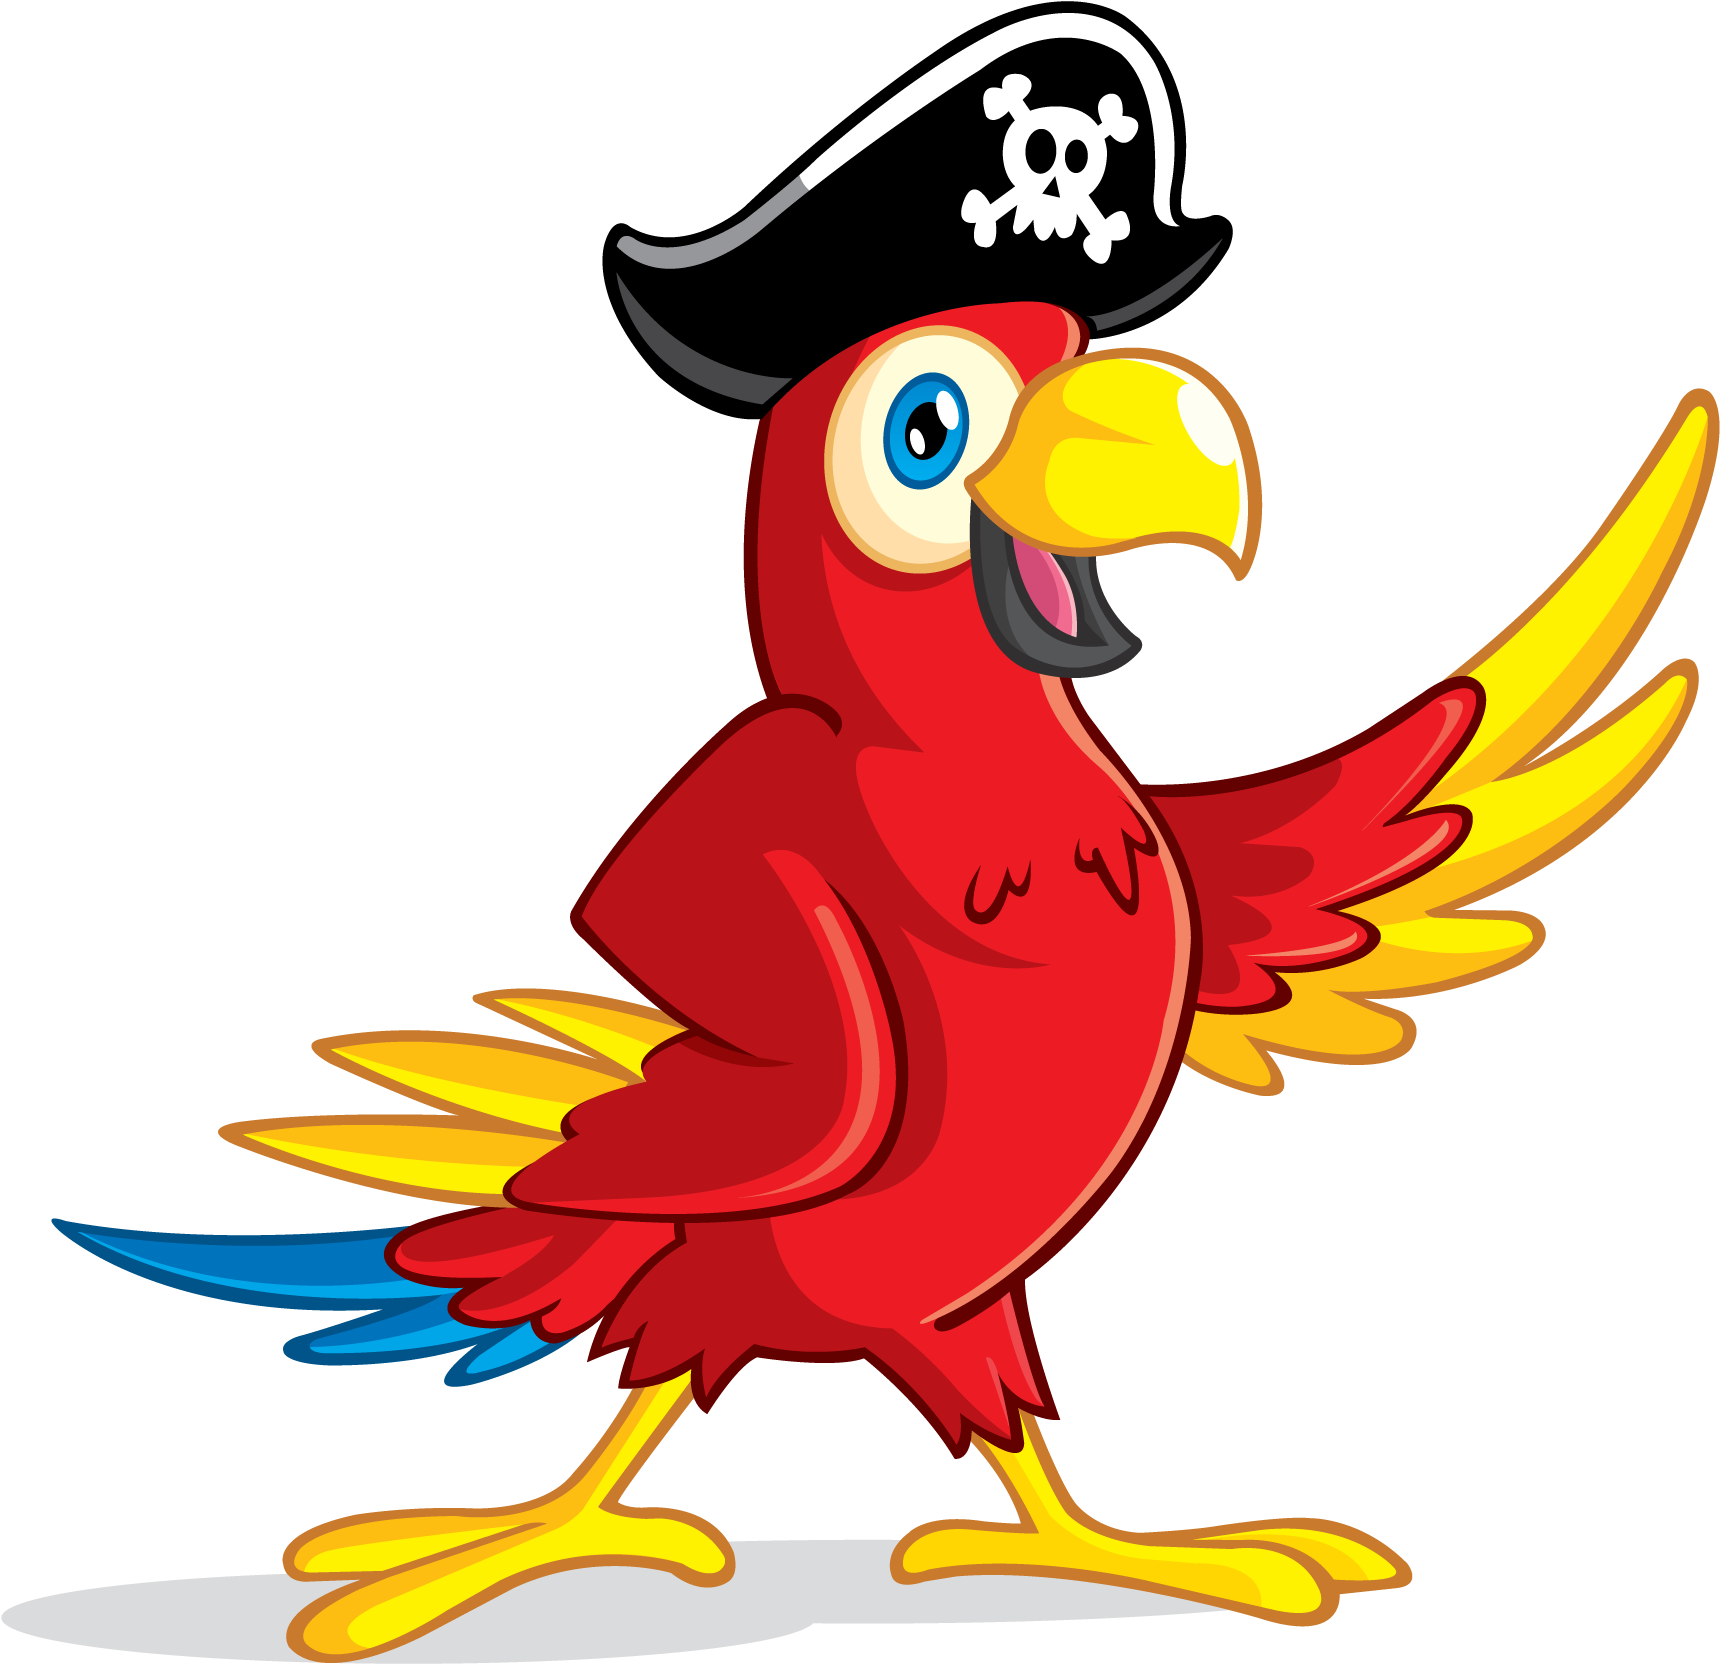 Pirate png x. Forest clipart parrot banner transparent download